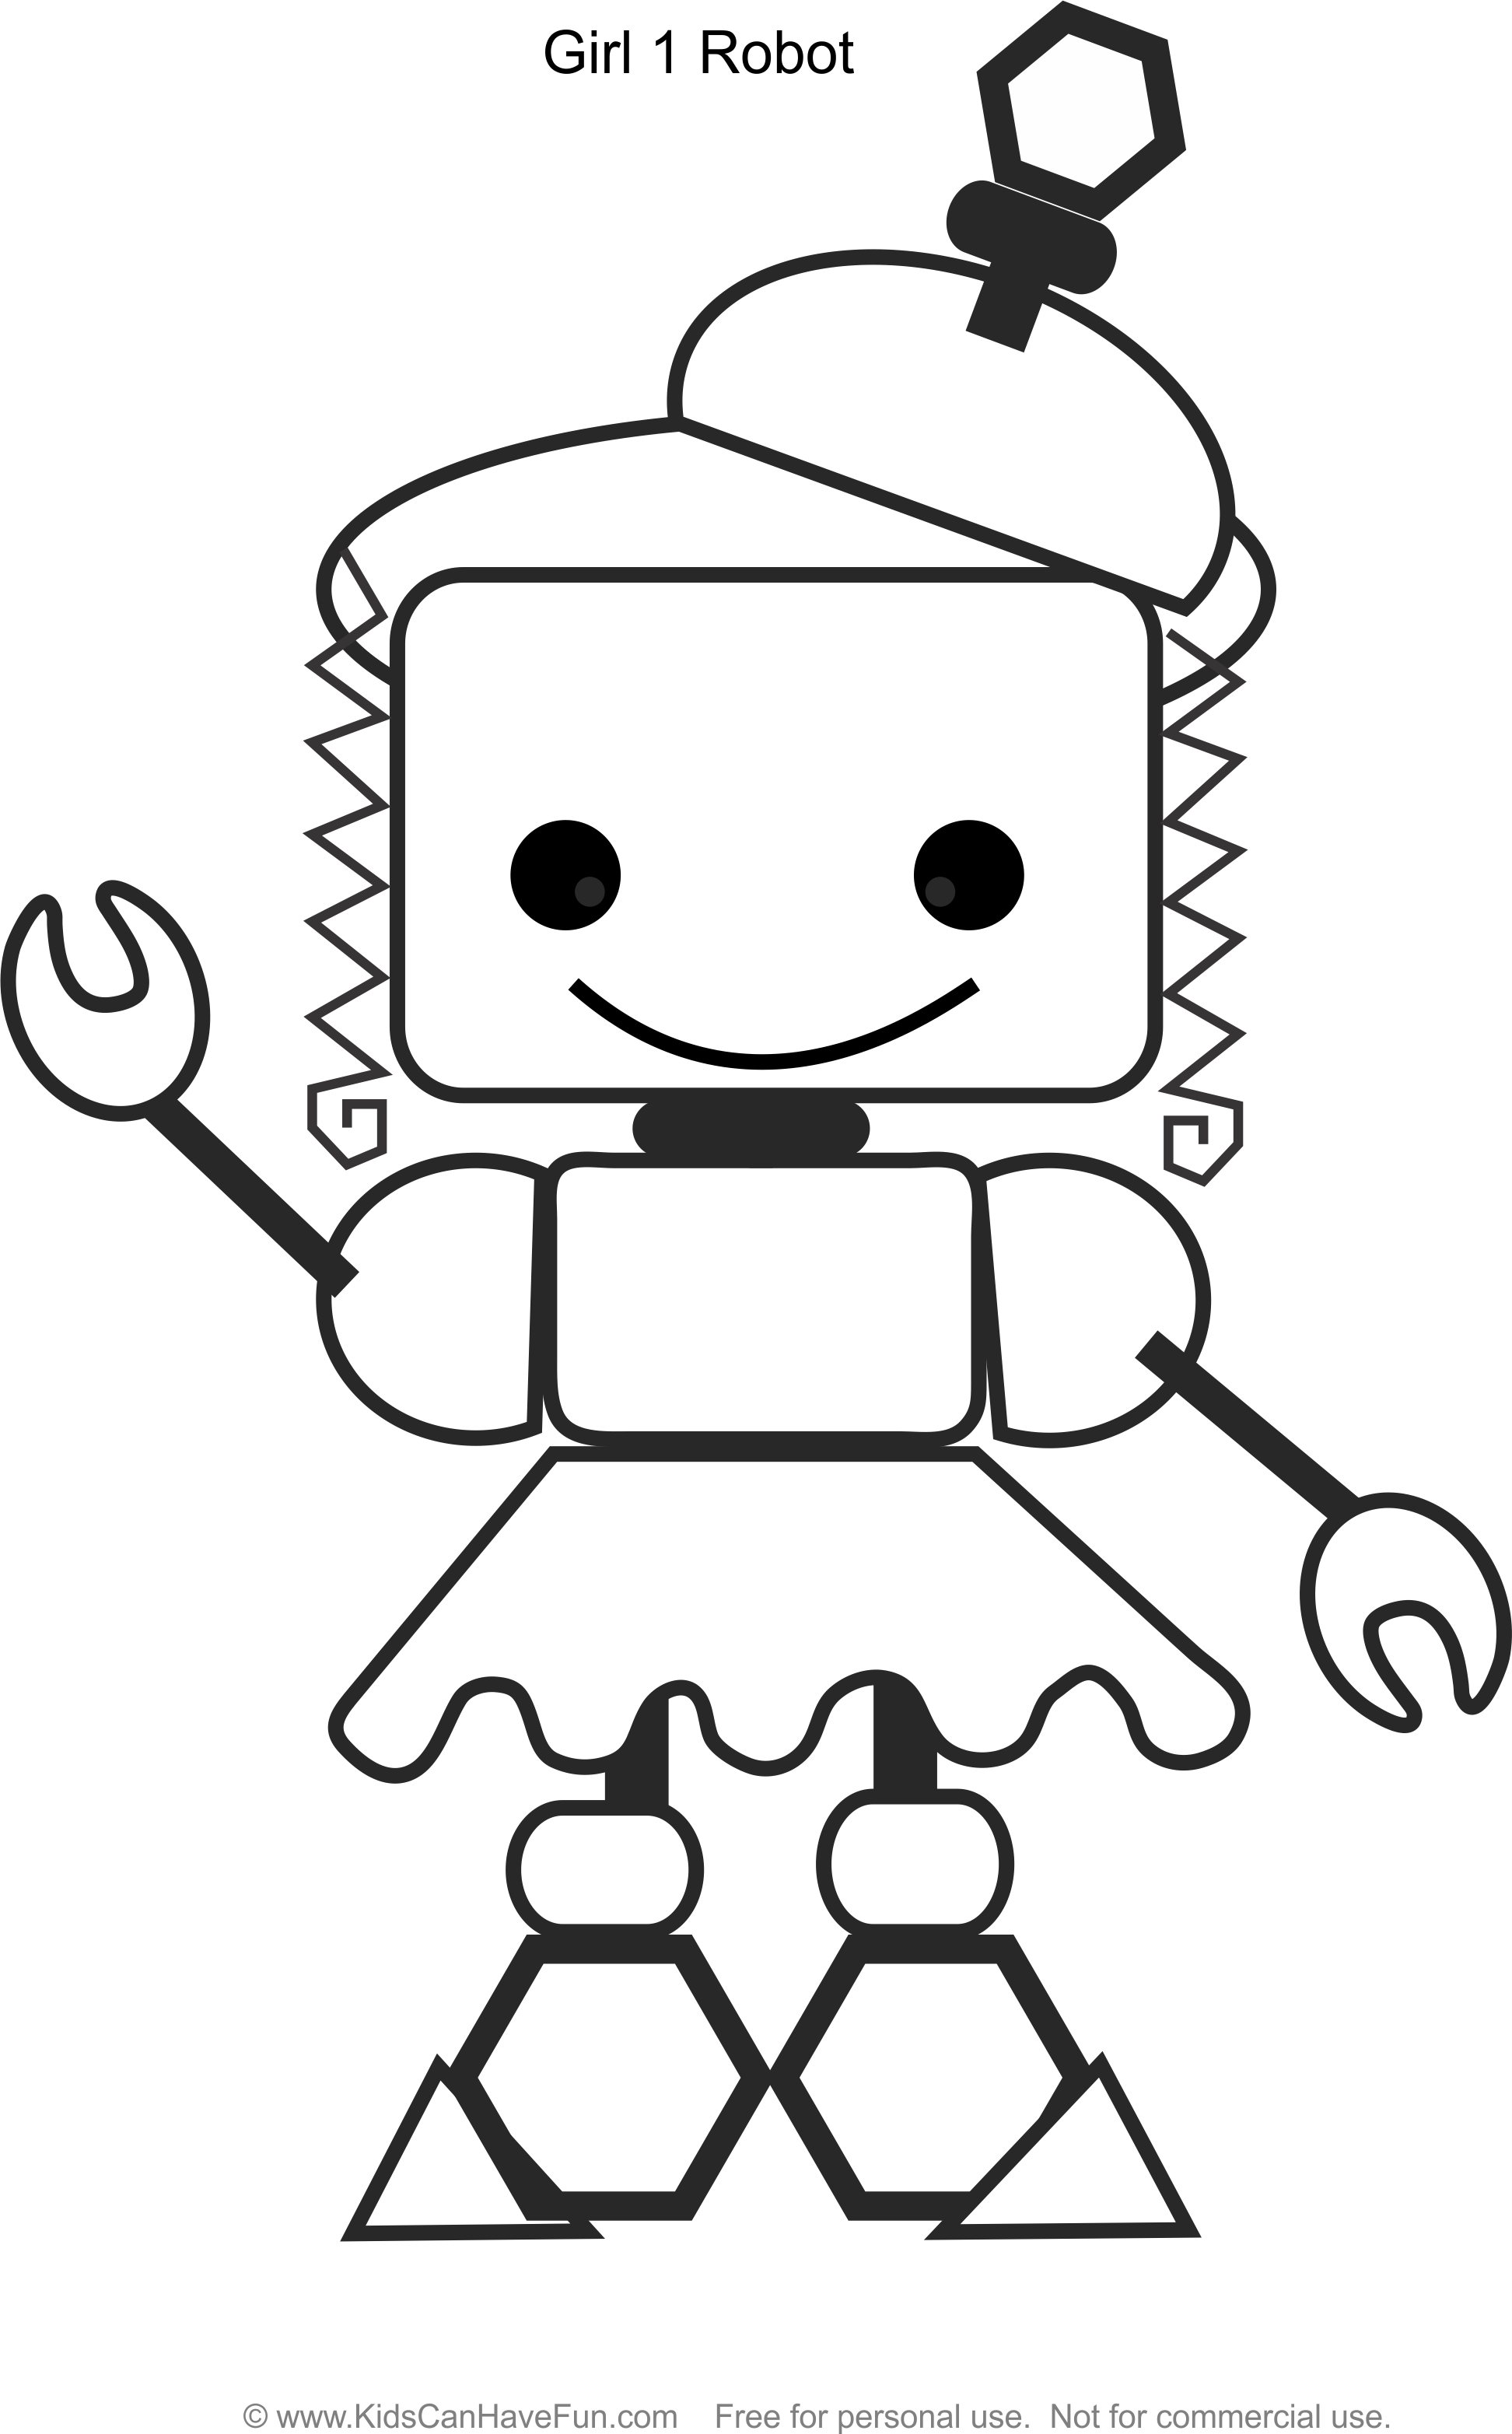 Robot Girl 1 Coloring Page Www Kidscanhavefu Robot Color Robot Girl 1 Colo Valentines Day Coloring Page Valentines Day Coloring Coloring Pages For Kids